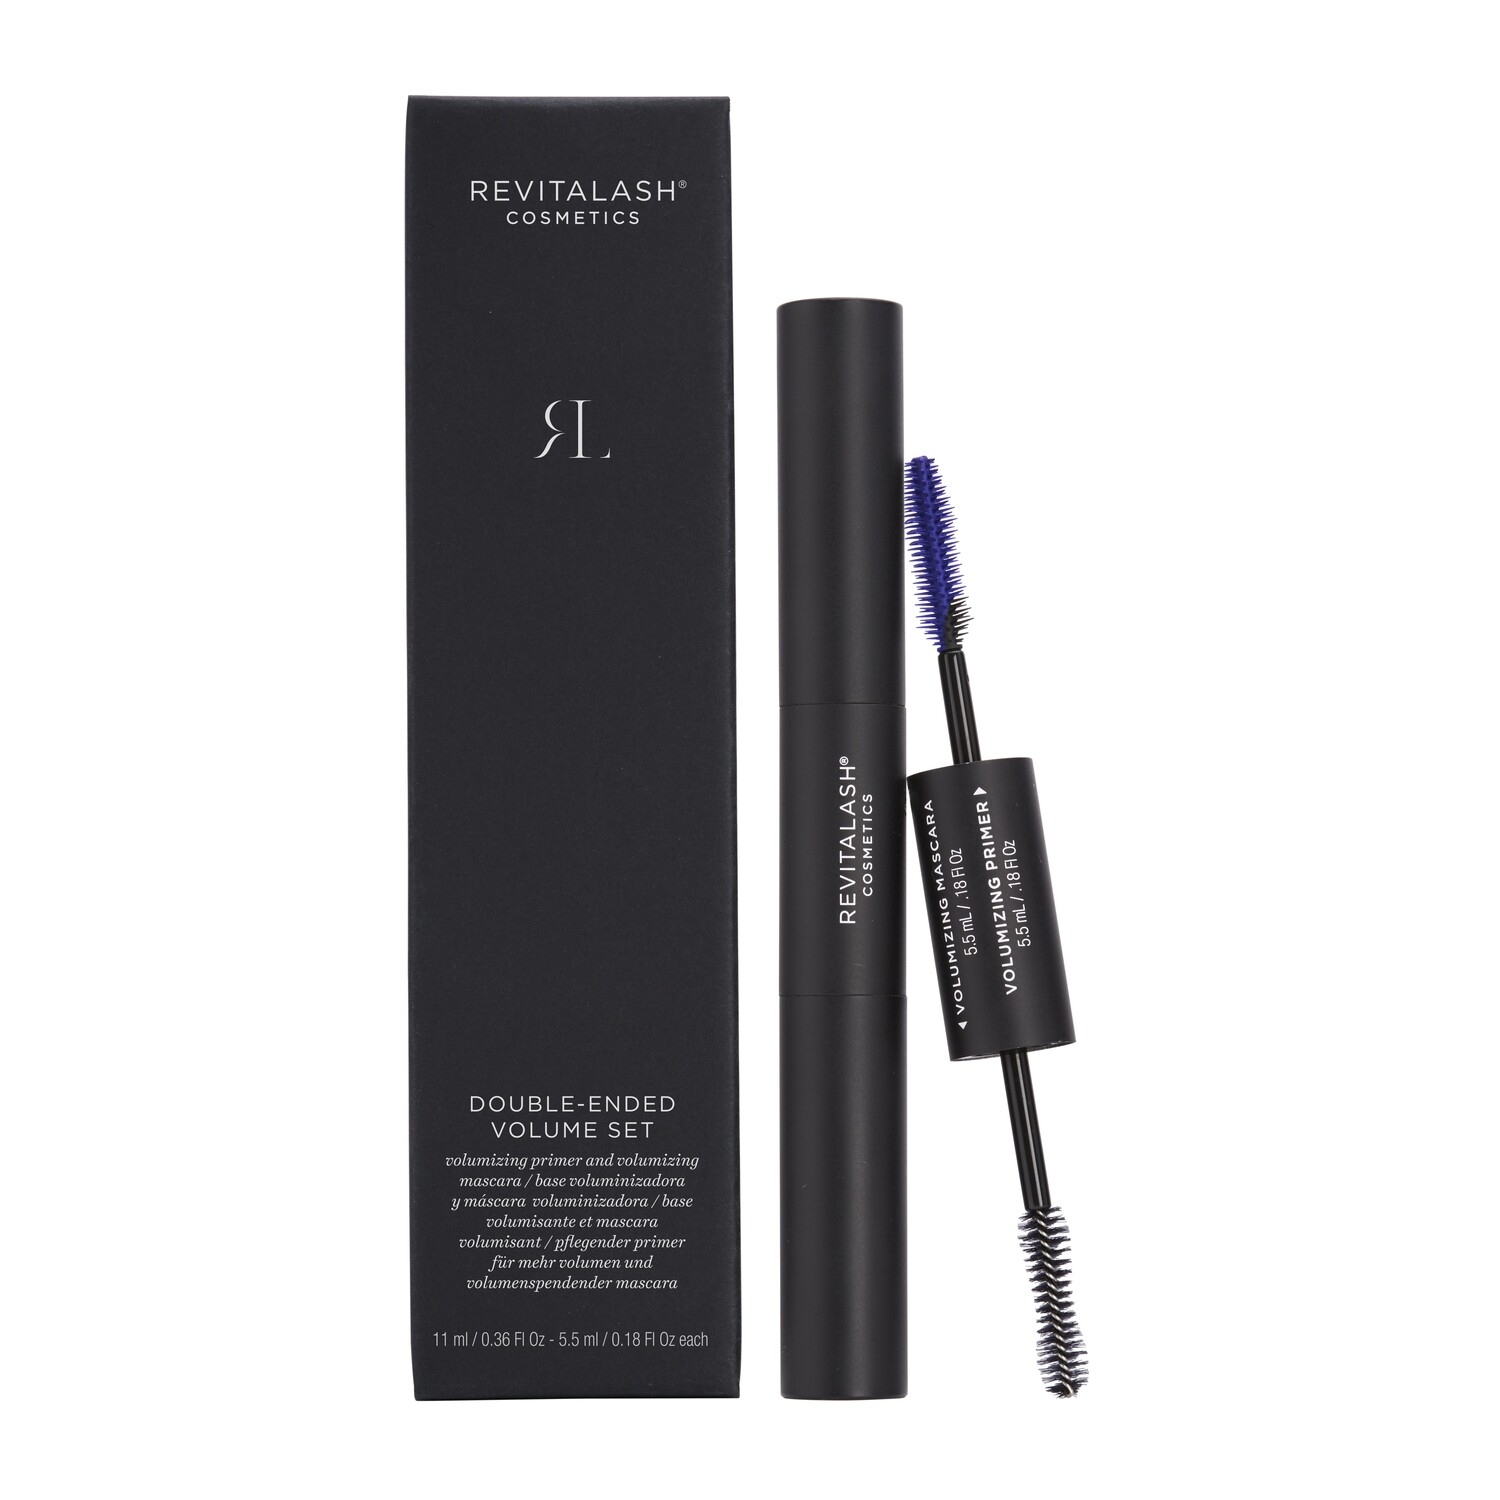 Revitalash Double - Ended Volume Mascara & Primer